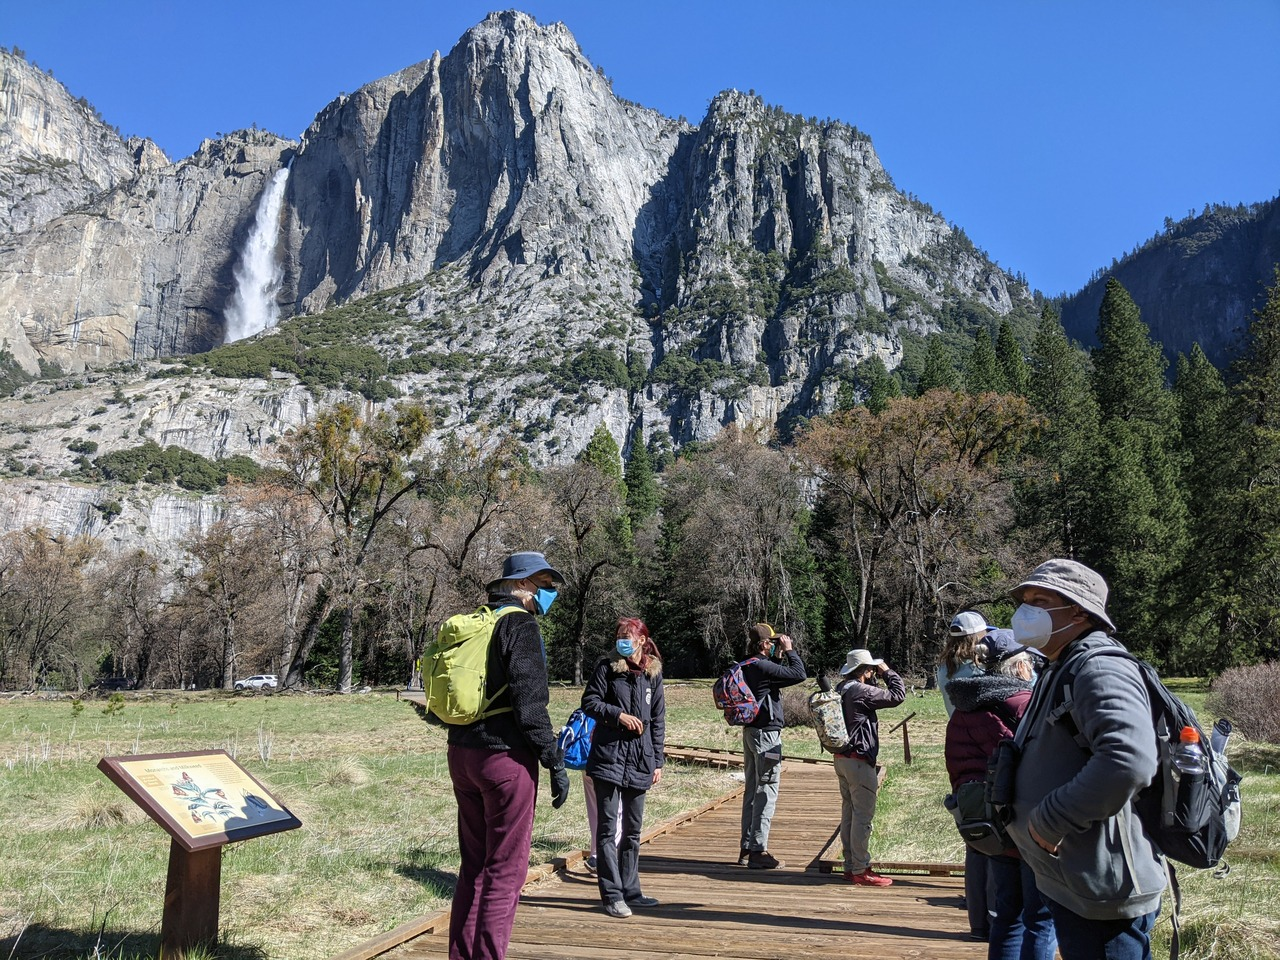 A group of people wearing face masks on a boardwalk in Yosemite Valley. A waterfall (Upper Yosemite Fall) flows in the background.